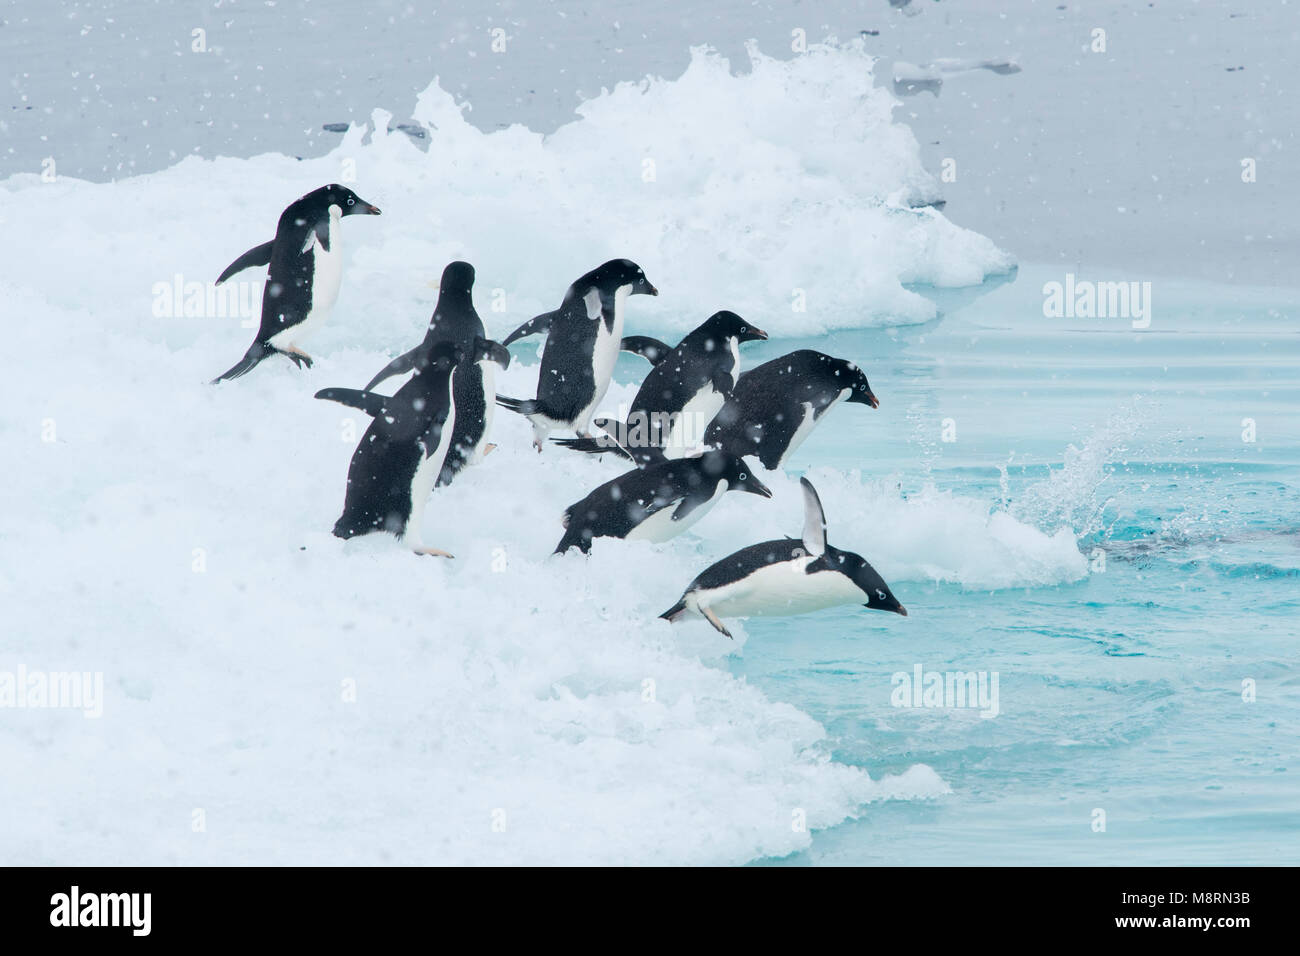 A group of Adelie penguins dive into the ocean from an iceberg in Antarctica. - Stock Image